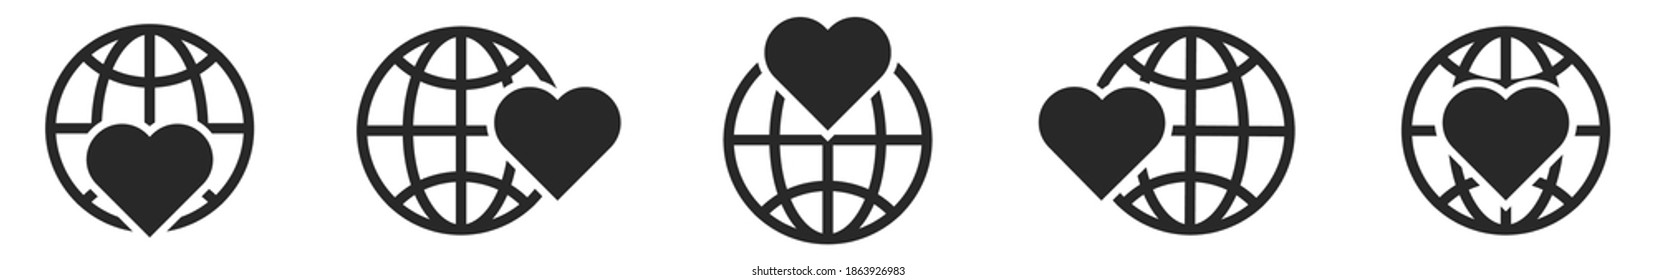 Planet Earth icon with heart symbol. Set of linear globe icons. Vector illustration. World health day concept